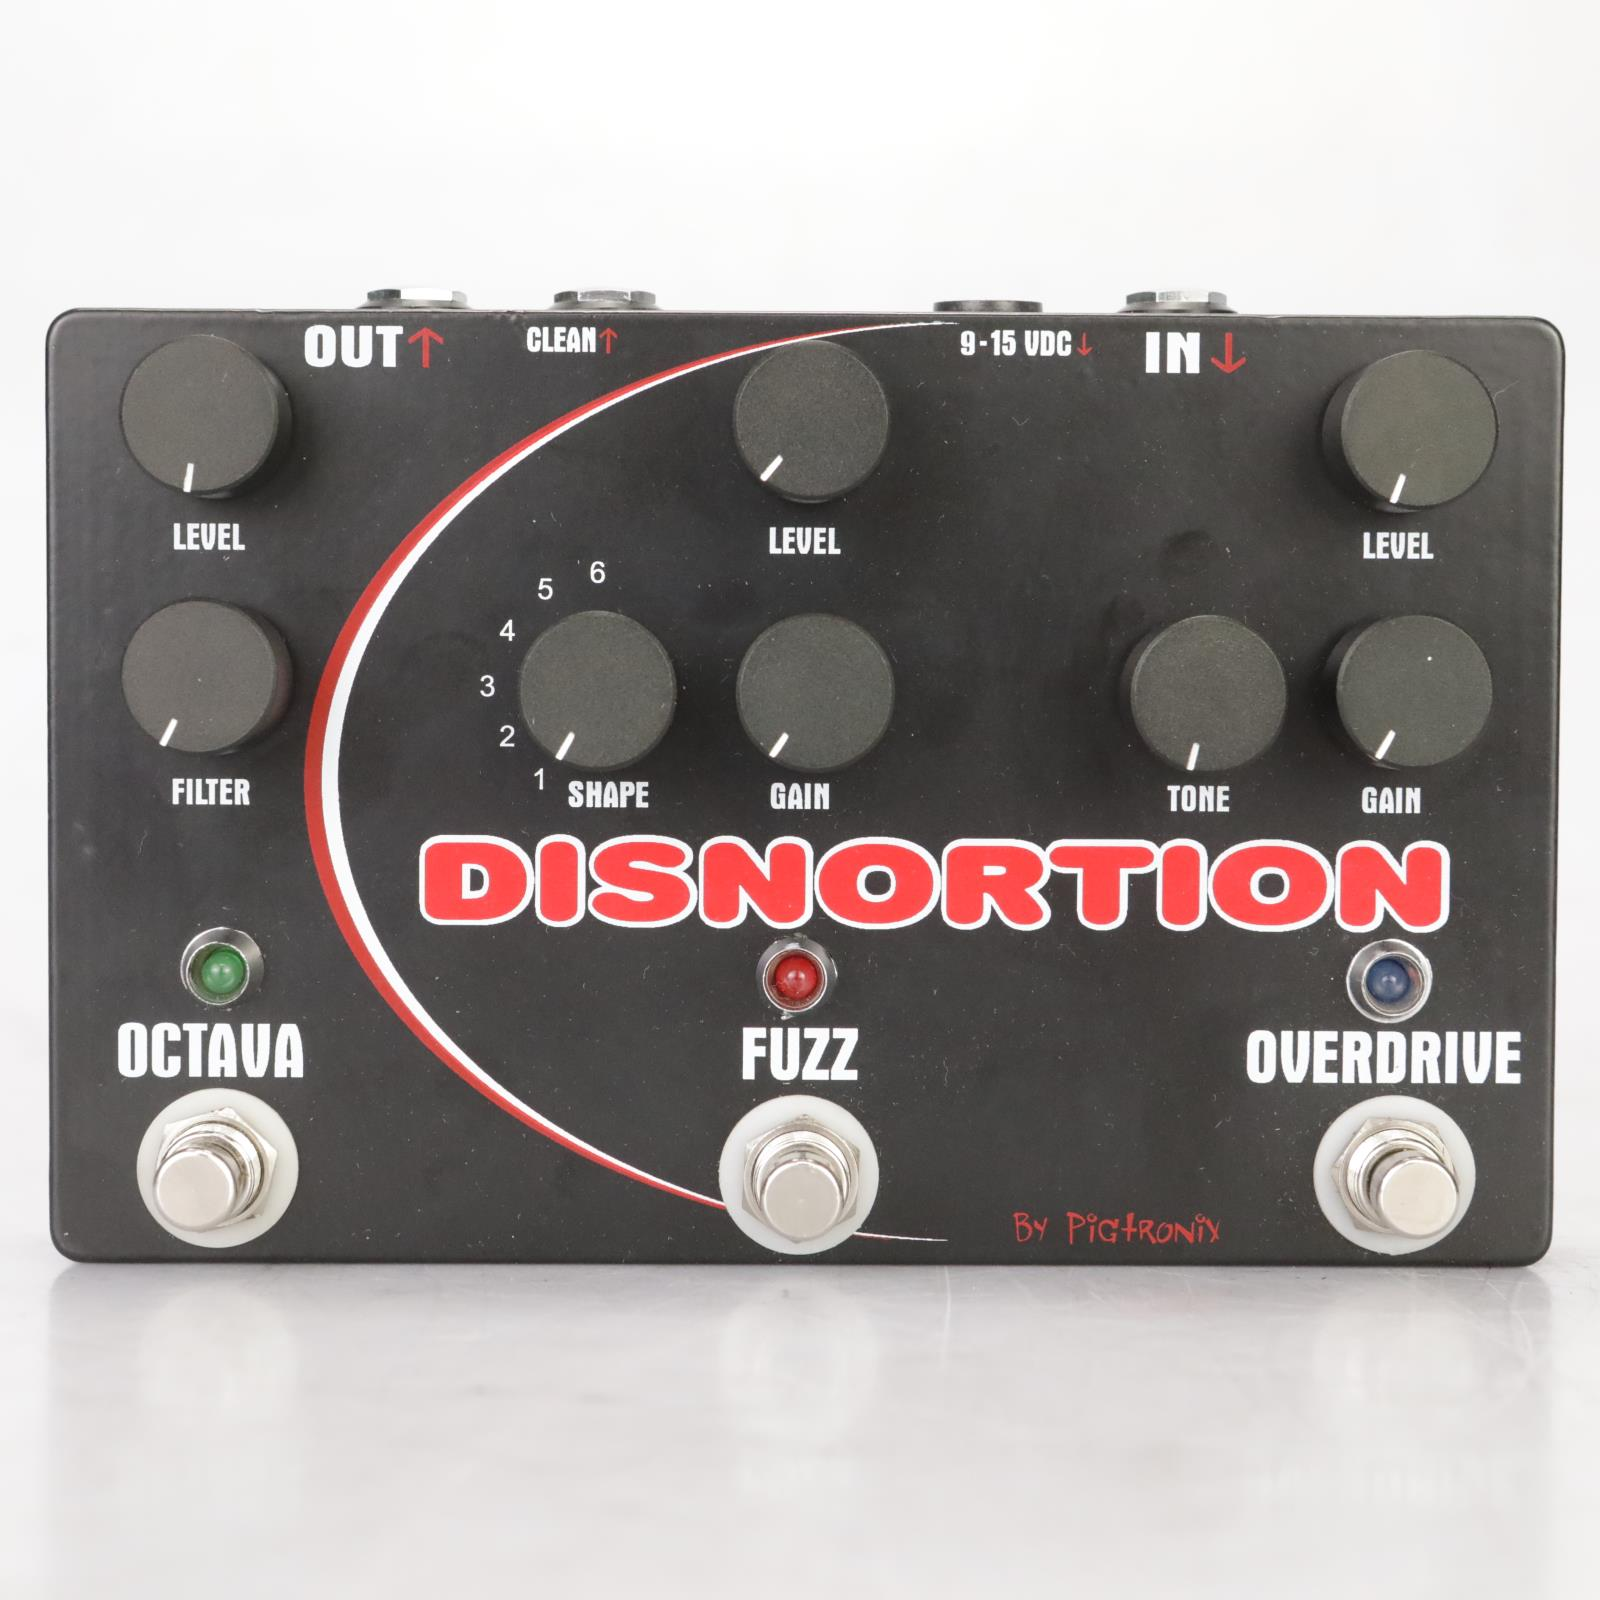 Pigtronix Disnortion Overdrive Fuzz Octava Pedal Owned by Leland Sklar #38860